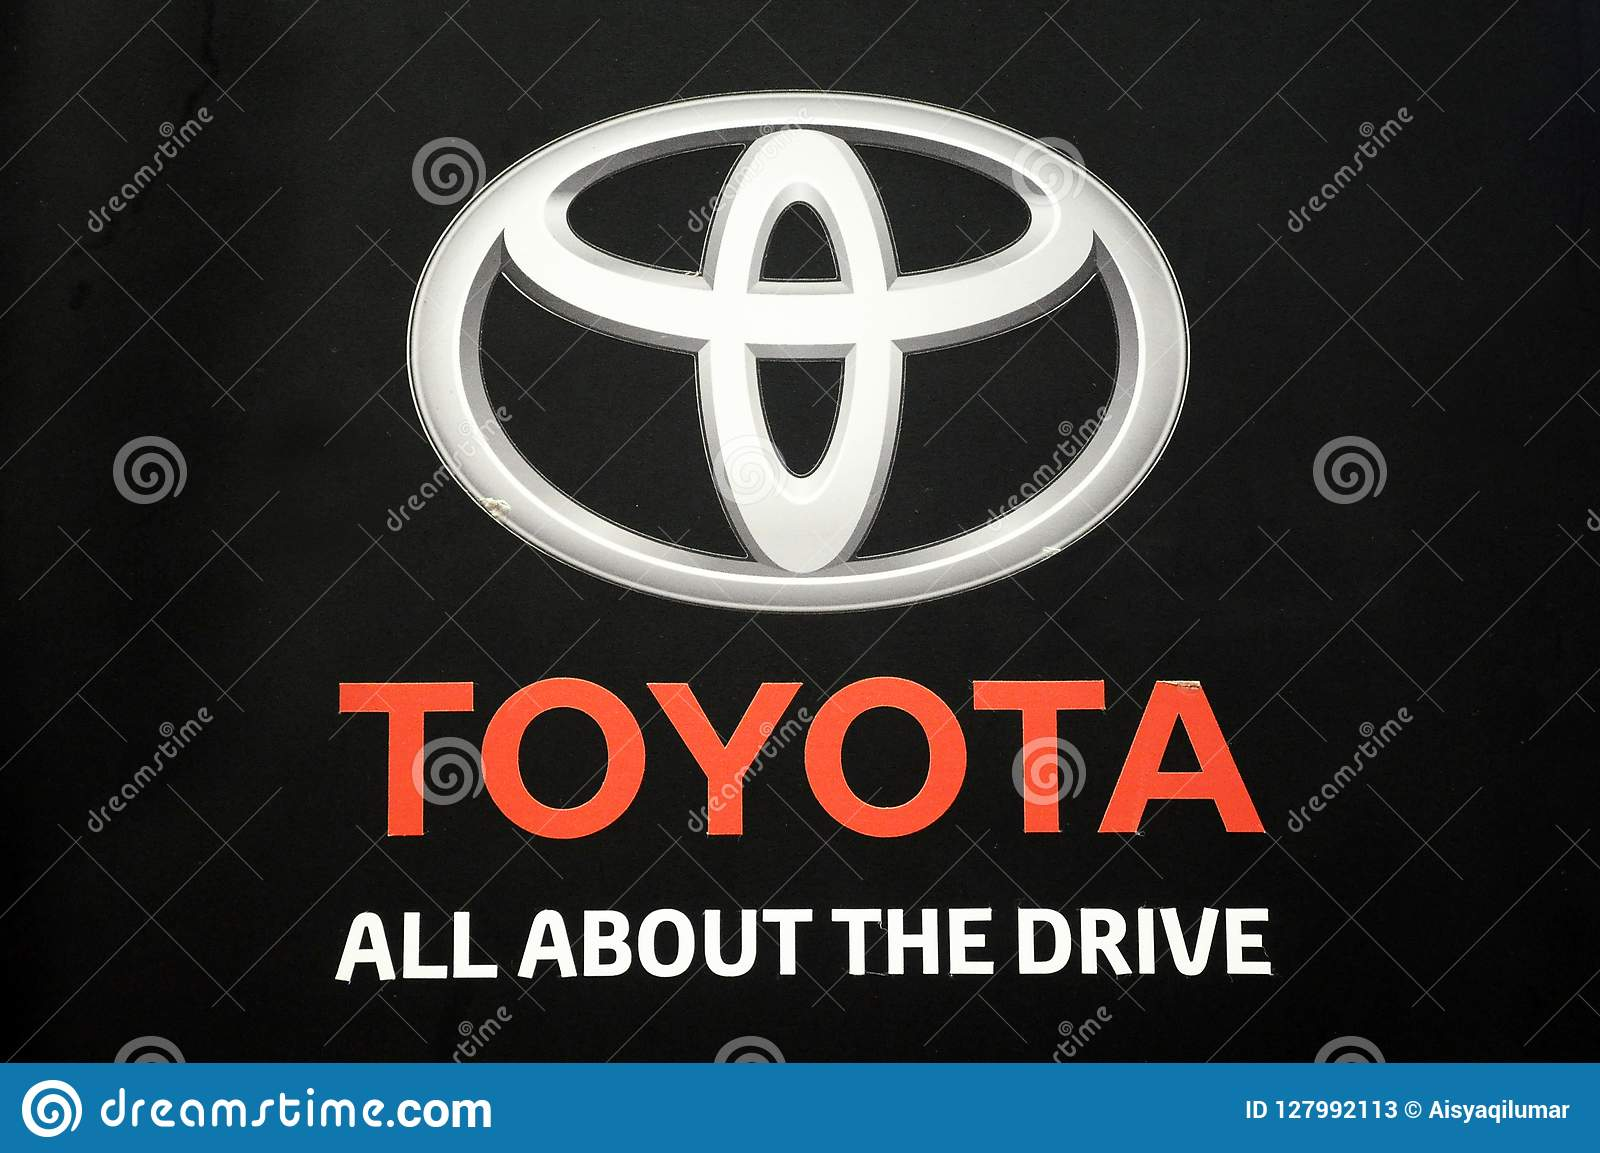 TOYOTA Commercial Brand Emblem And Logos At The Car Body